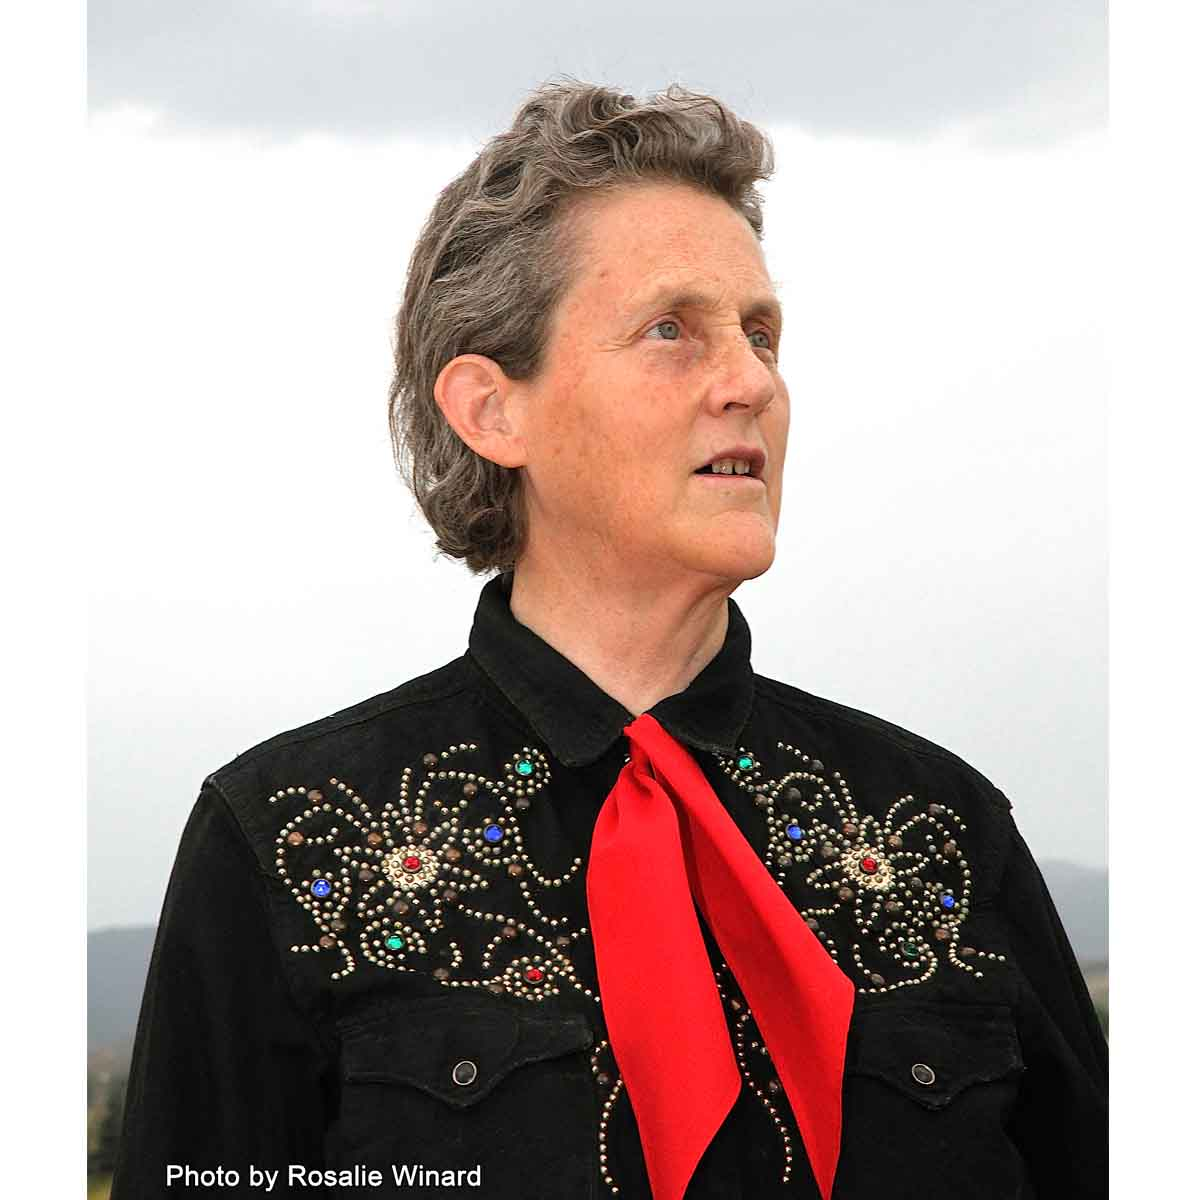 Temple Grandin, a professor of animal science at Colorado State University and autism spokesperson